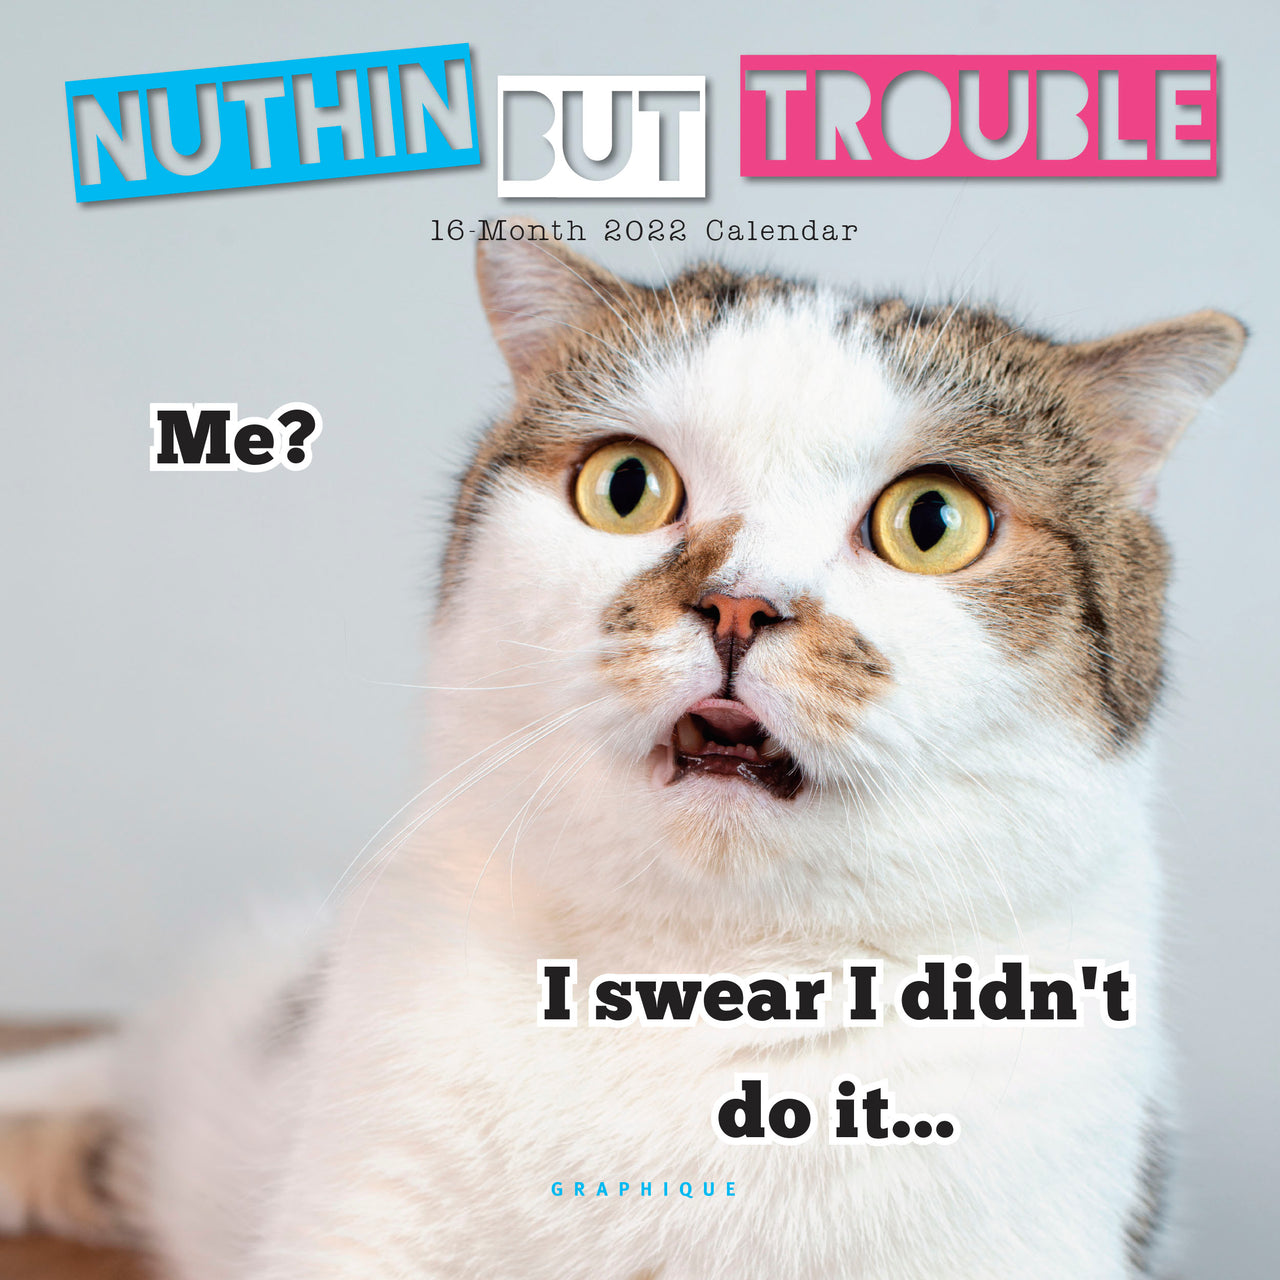 Nuthin' But Trouble 7x7 Mini Calendar